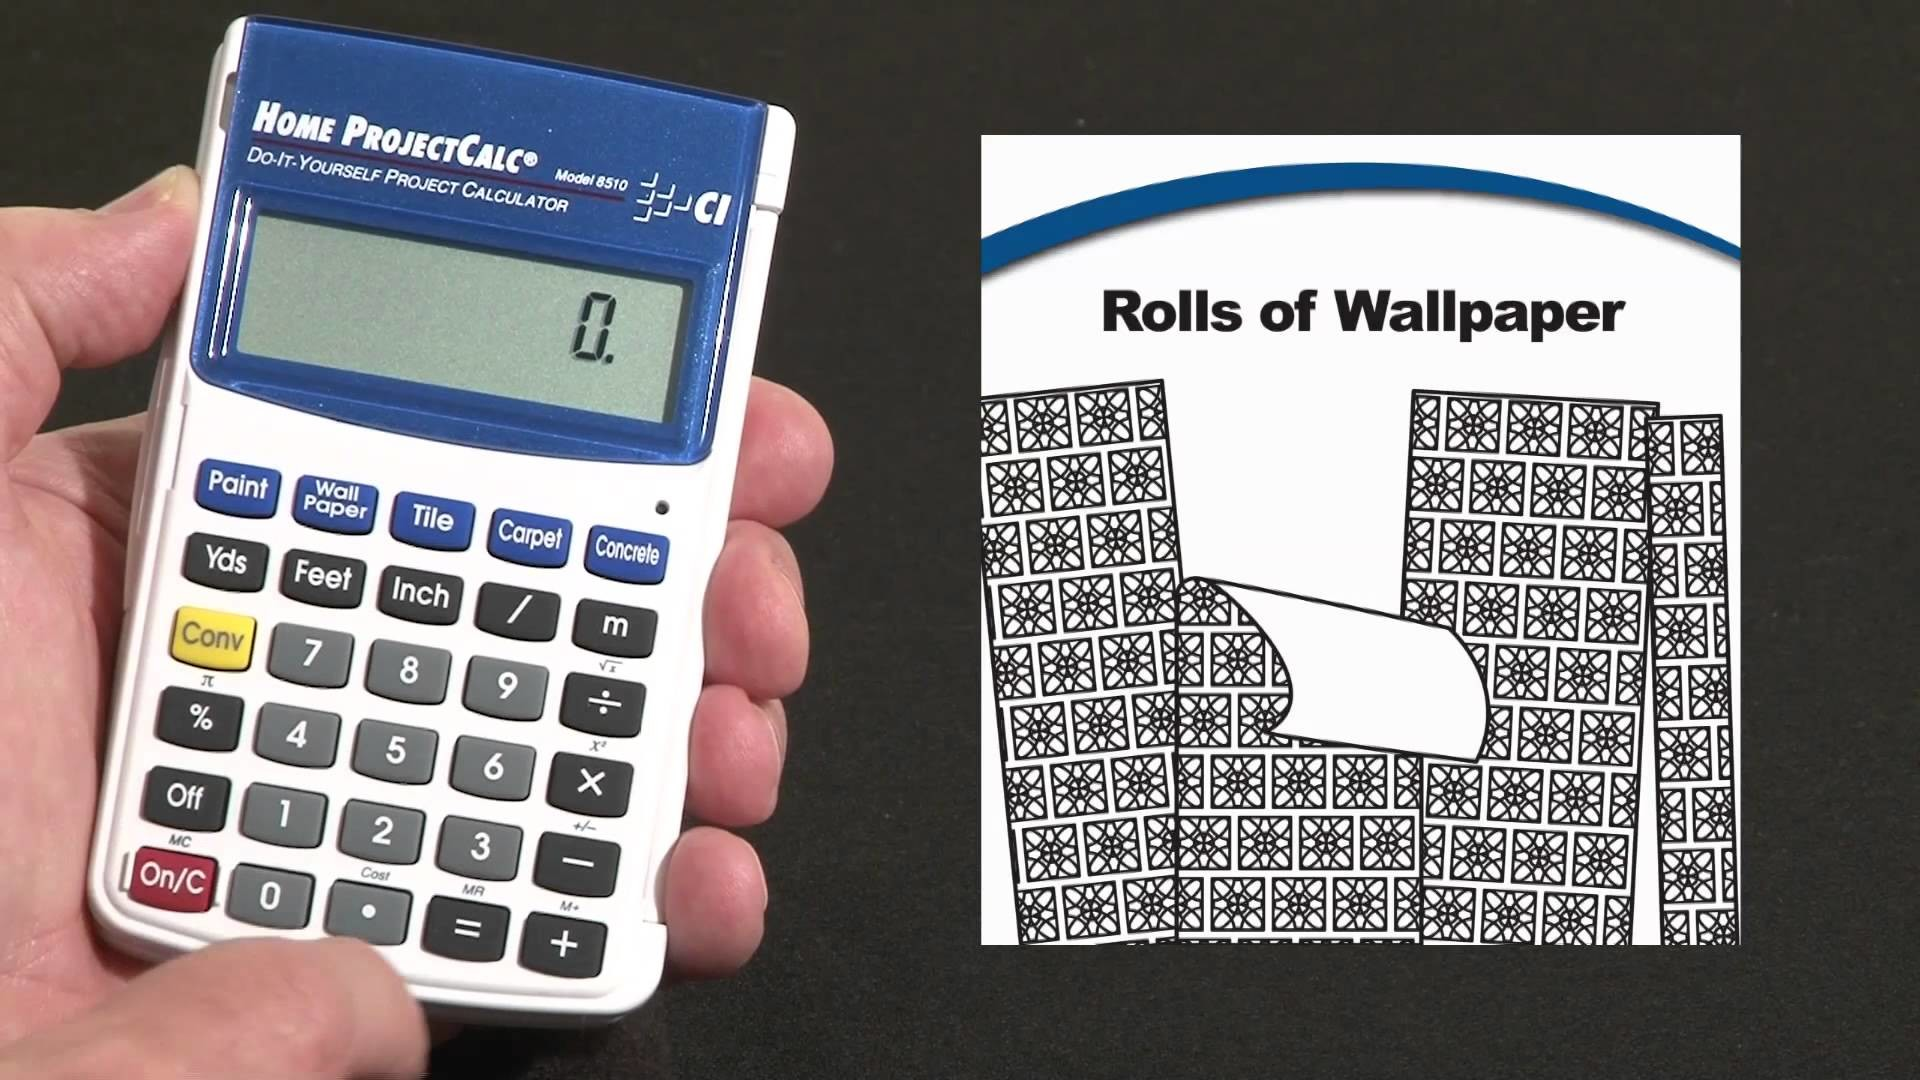 1920x1080 Home ProjectCalc Rolls Of Wallpaper Calculations How To